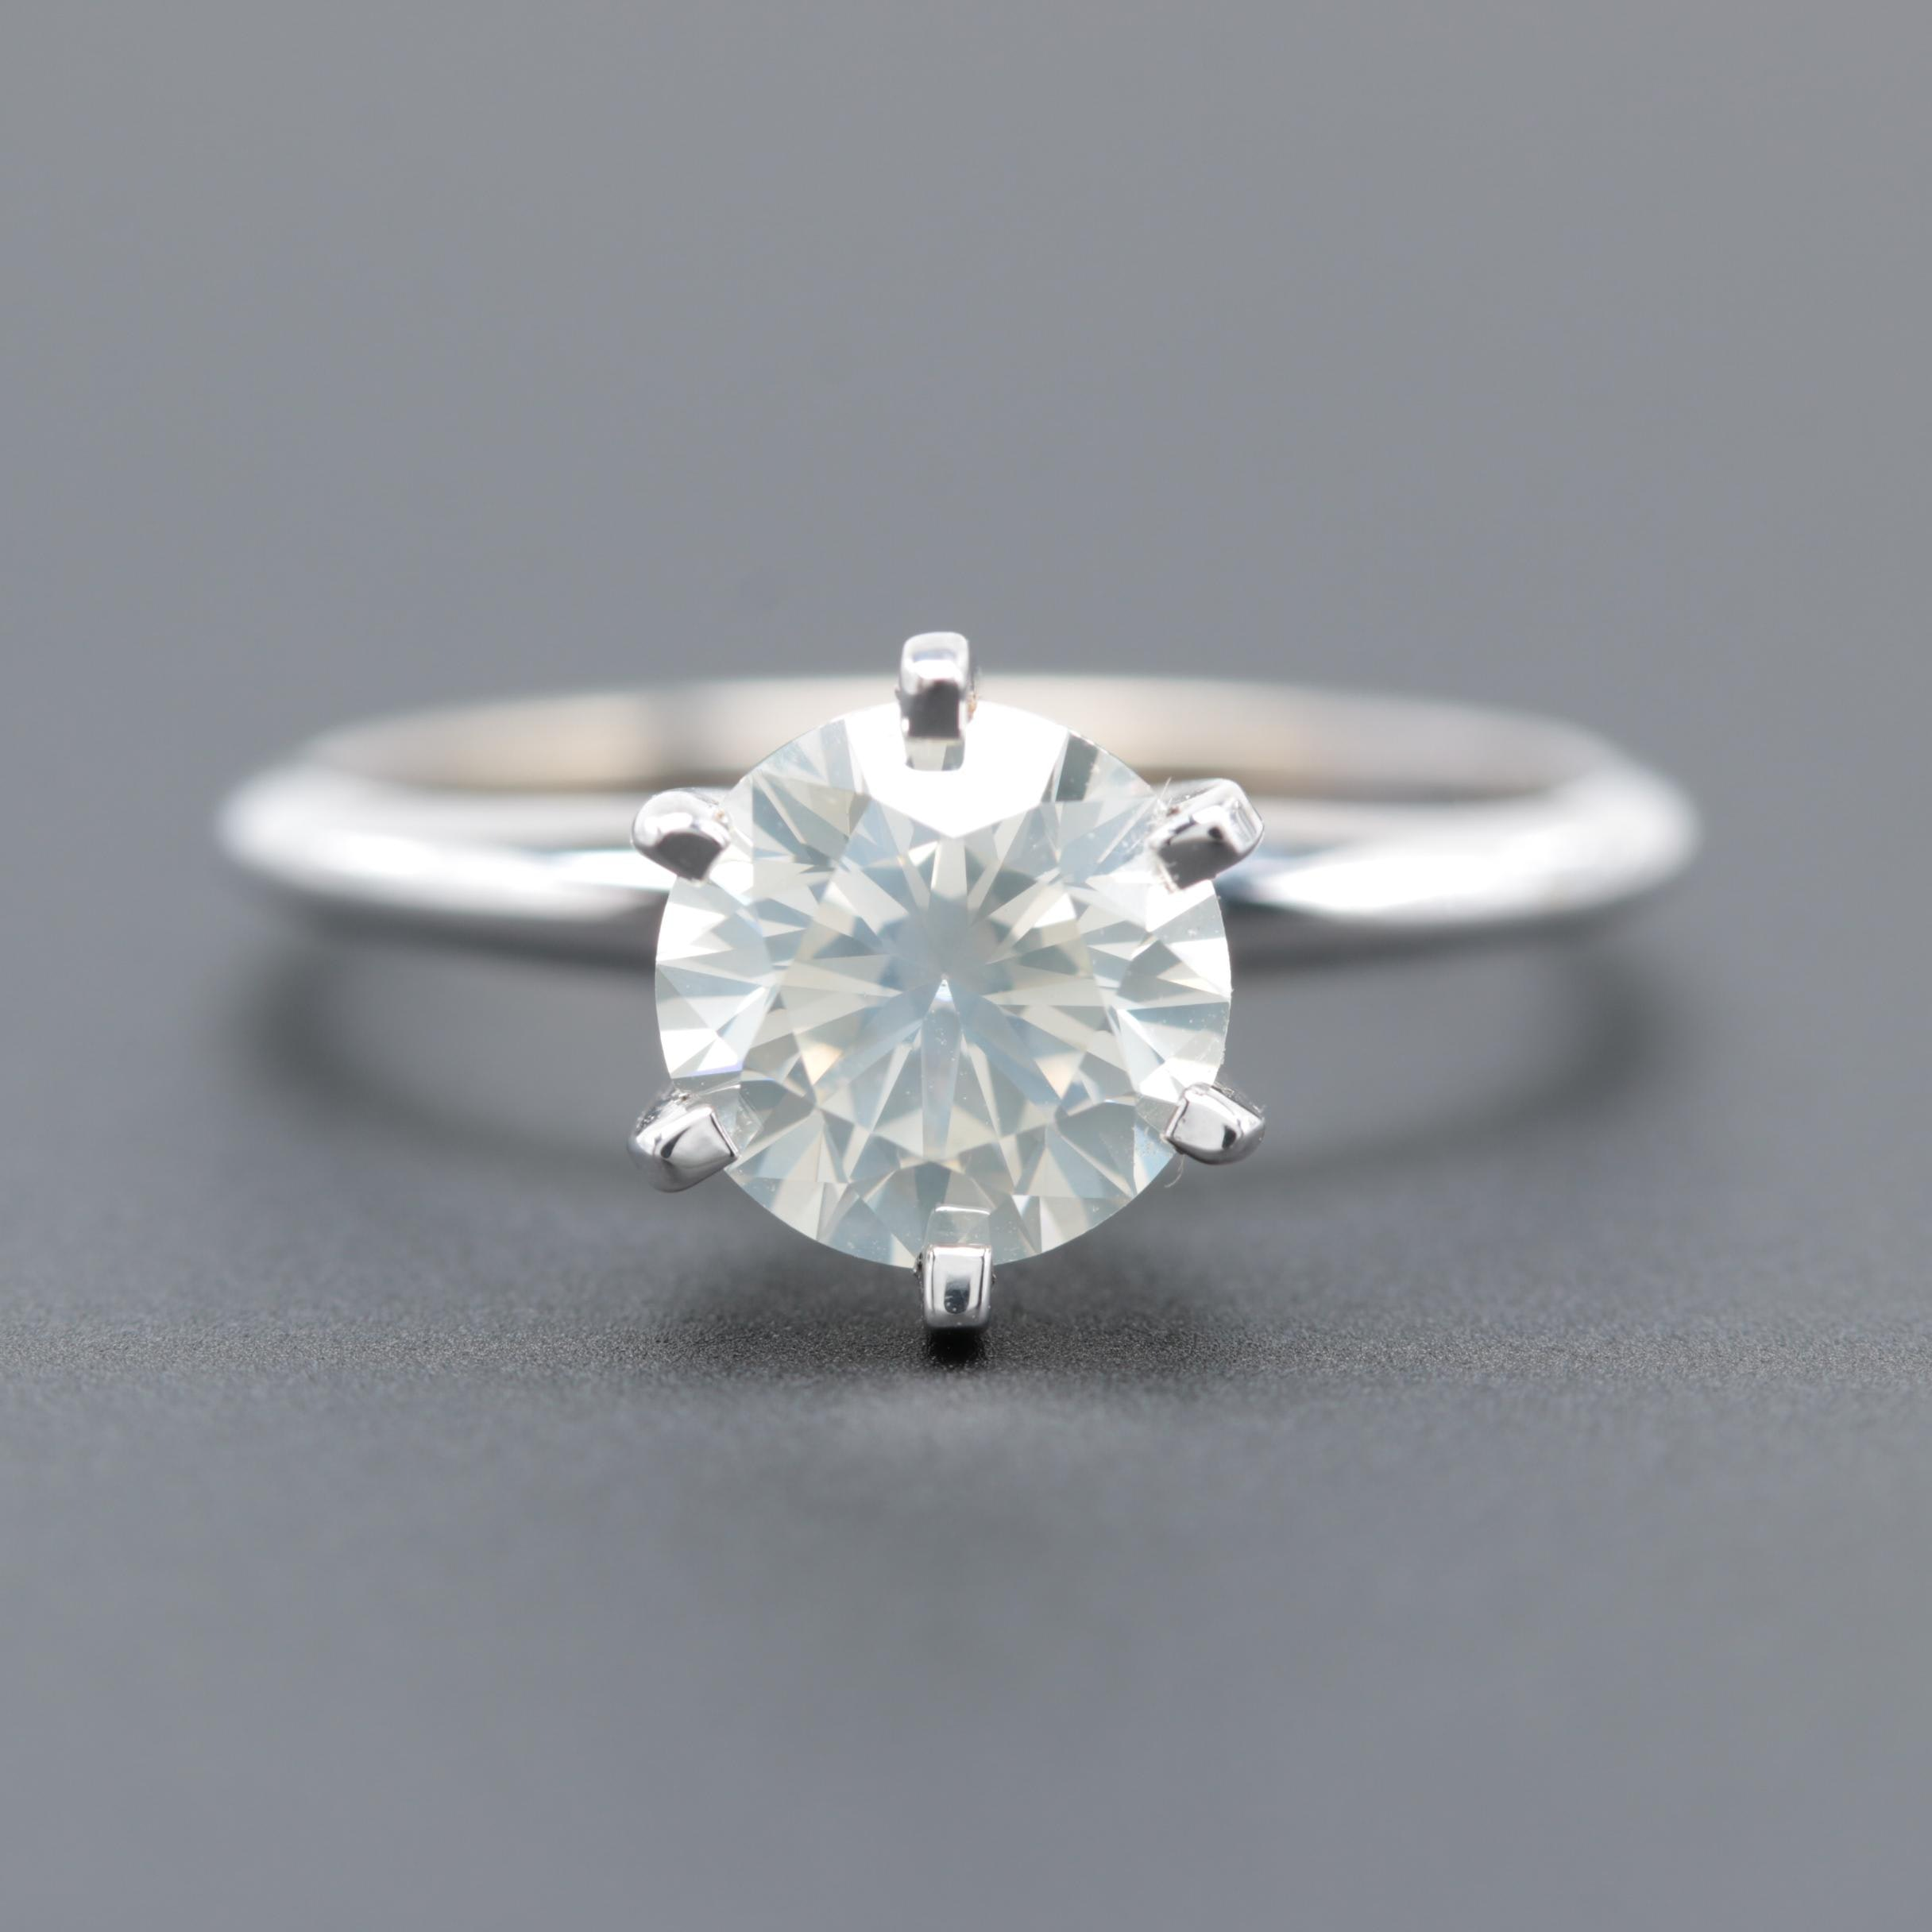 14K White Gold 1.53 CT Diamond Solitaire Ring